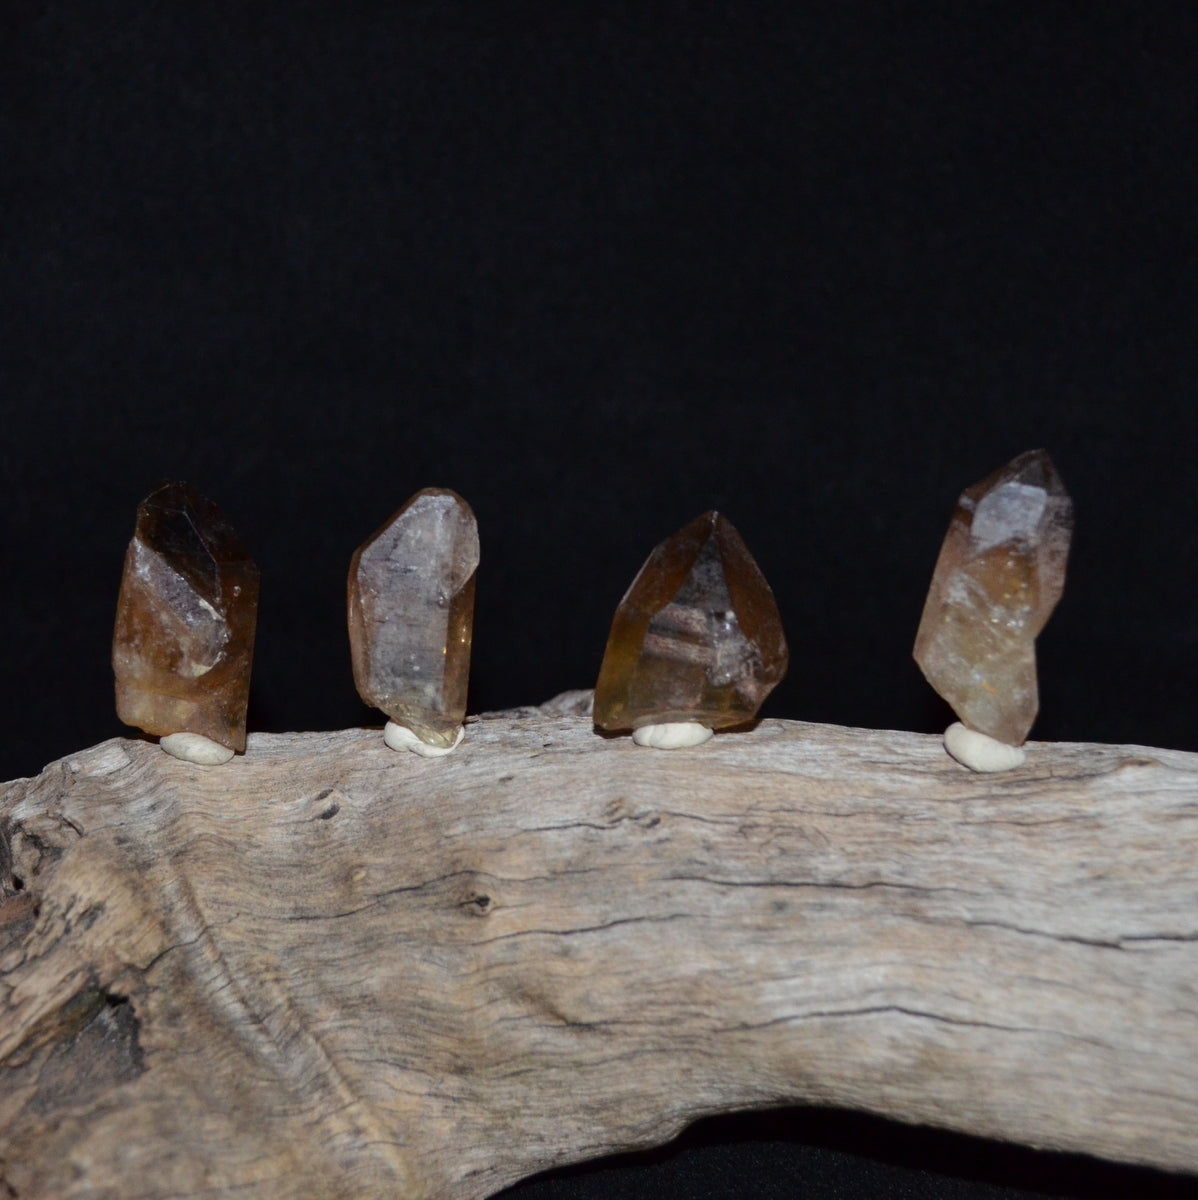 Natural Untreated Smoky Citrine Point - Wealth Abundance Law of Attraction Manifestation - Shop now at Illiom Crystals - We Have Afterpay